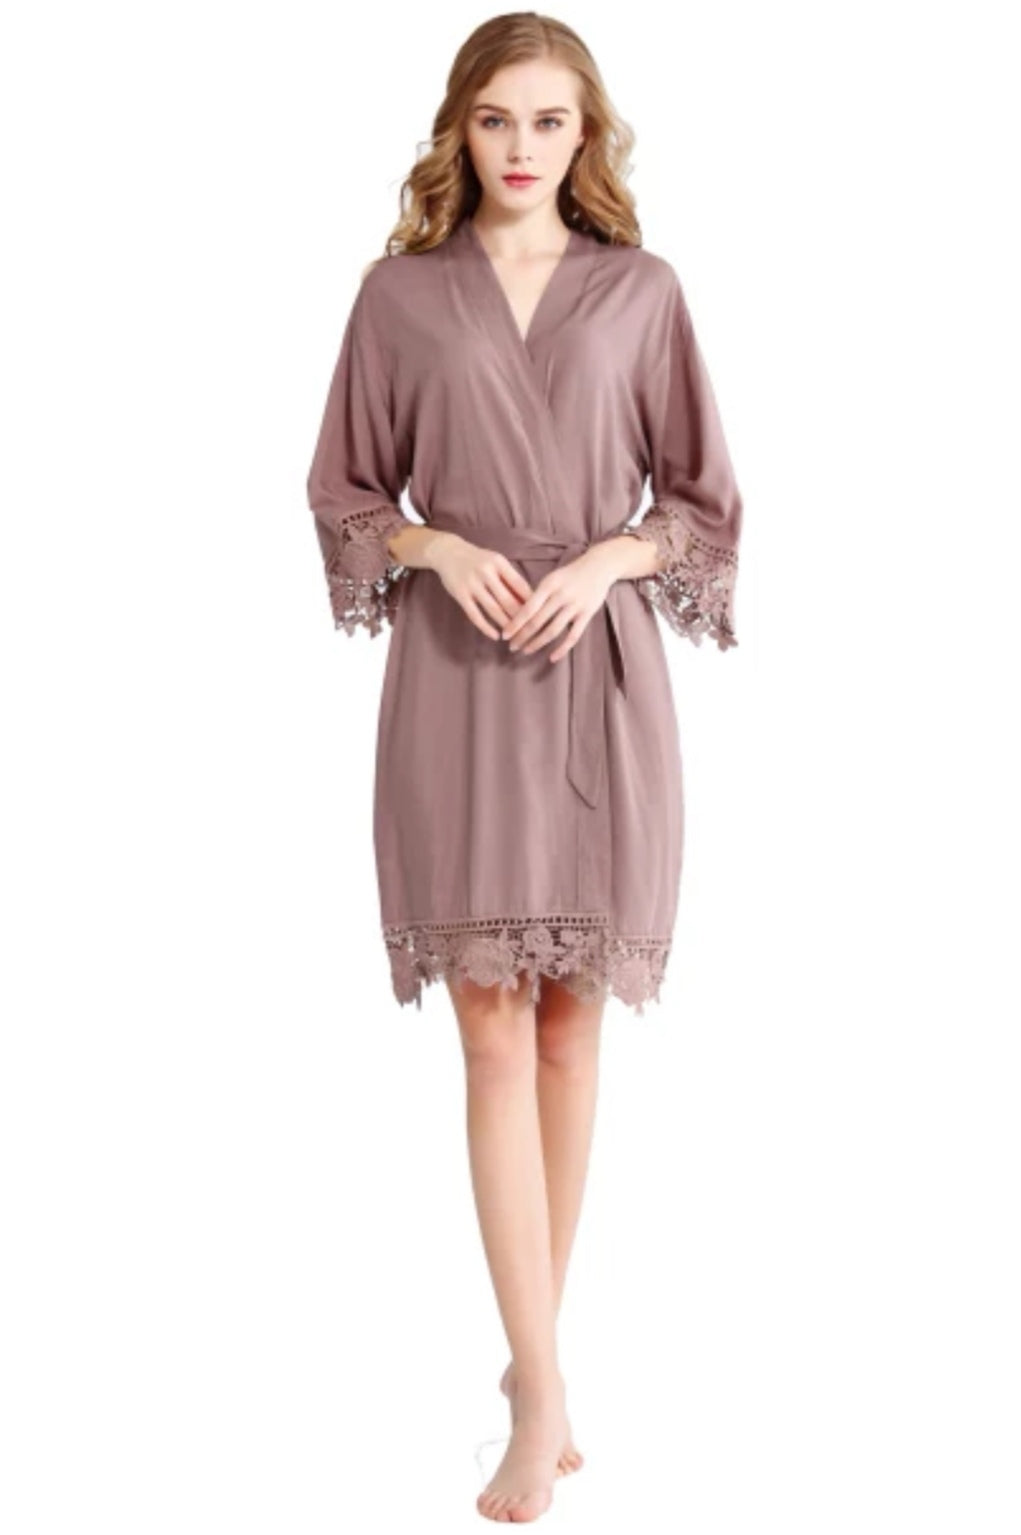 Lace Edge Robe in MAUVE